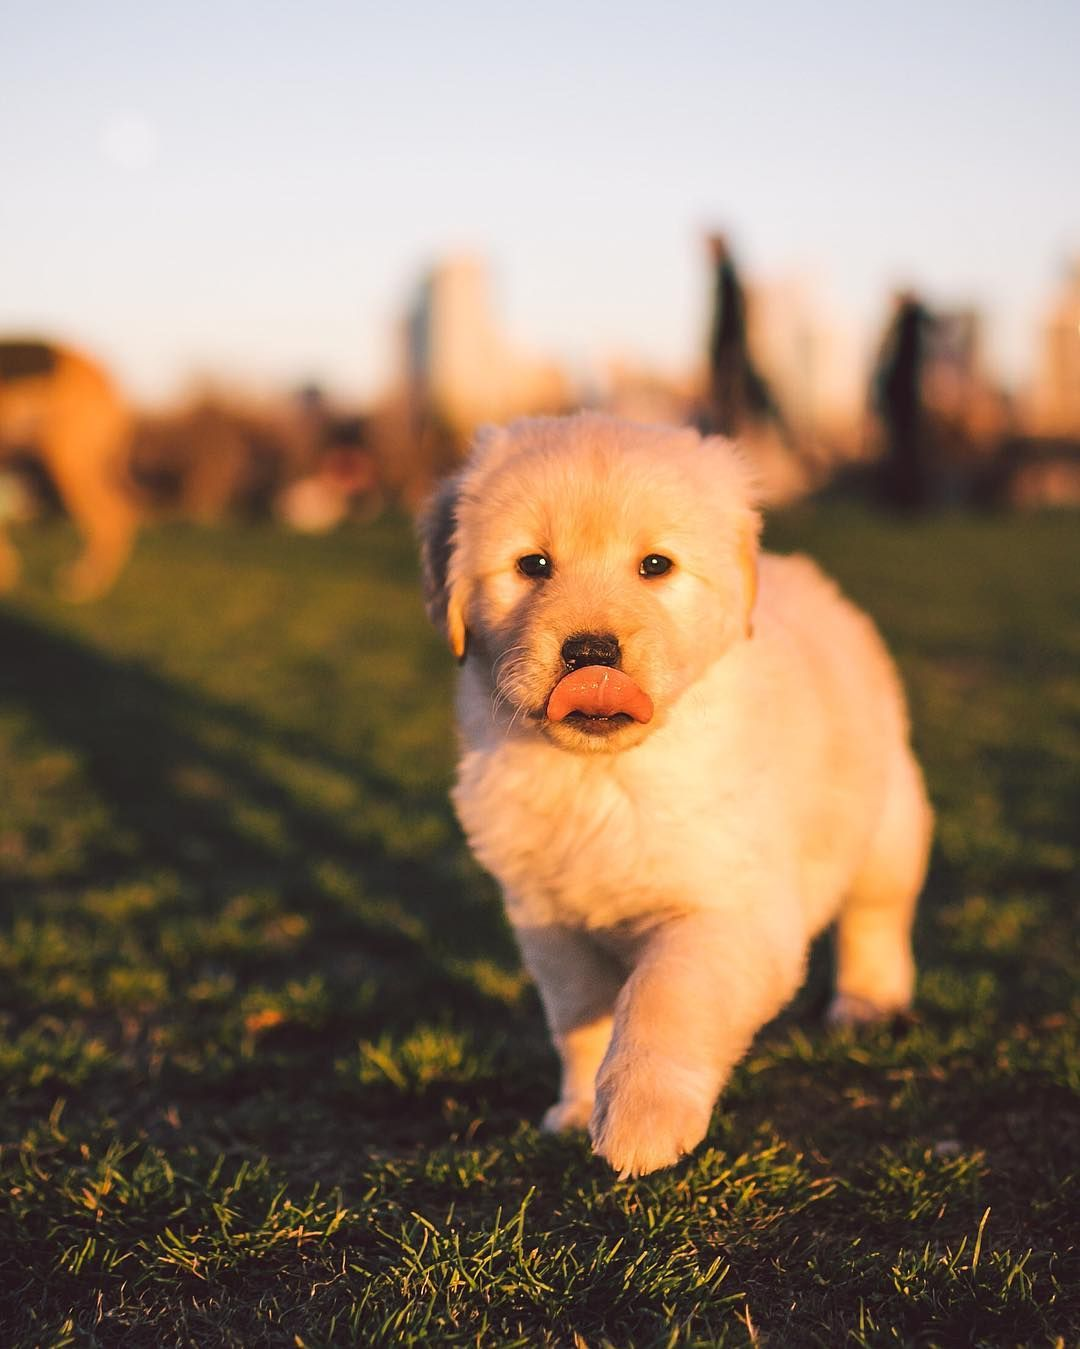 Maisie the 6wk old Golden Retriever pup   raisingmaisie Maisie is      raisingmaisie Maisie is that last puppy for this week s Puppy Dog Monday   Thanks for tuning in   puppy by zilkerbark